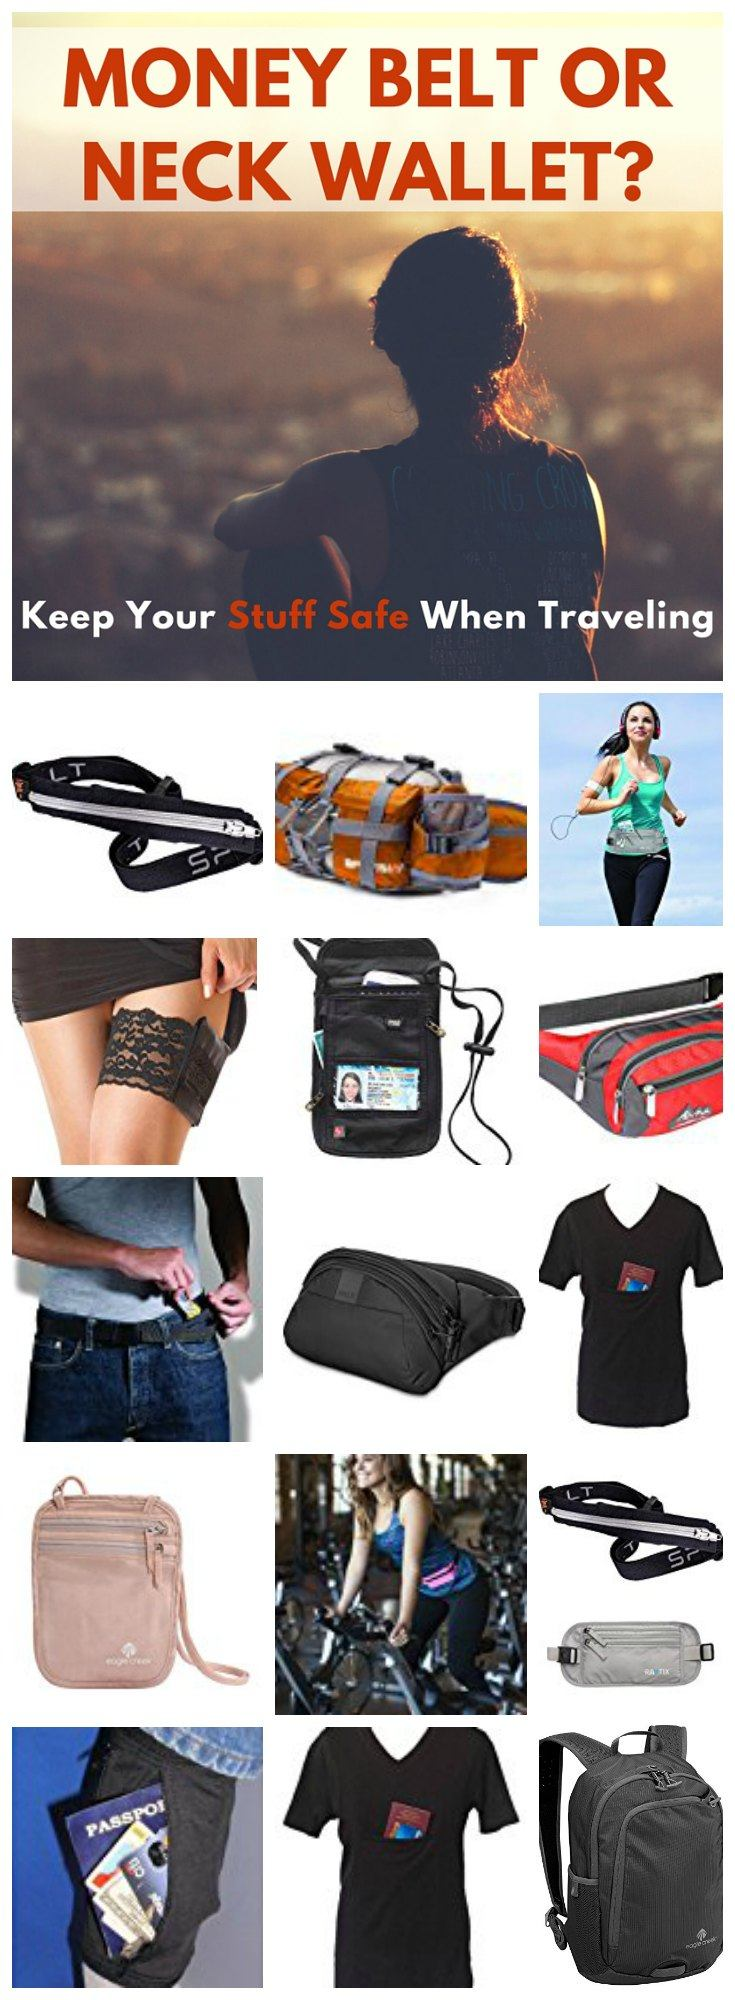 66a3d923b0e6 Money Belt or Neck Wallet? Reviews and Alternative to Keep Your ...